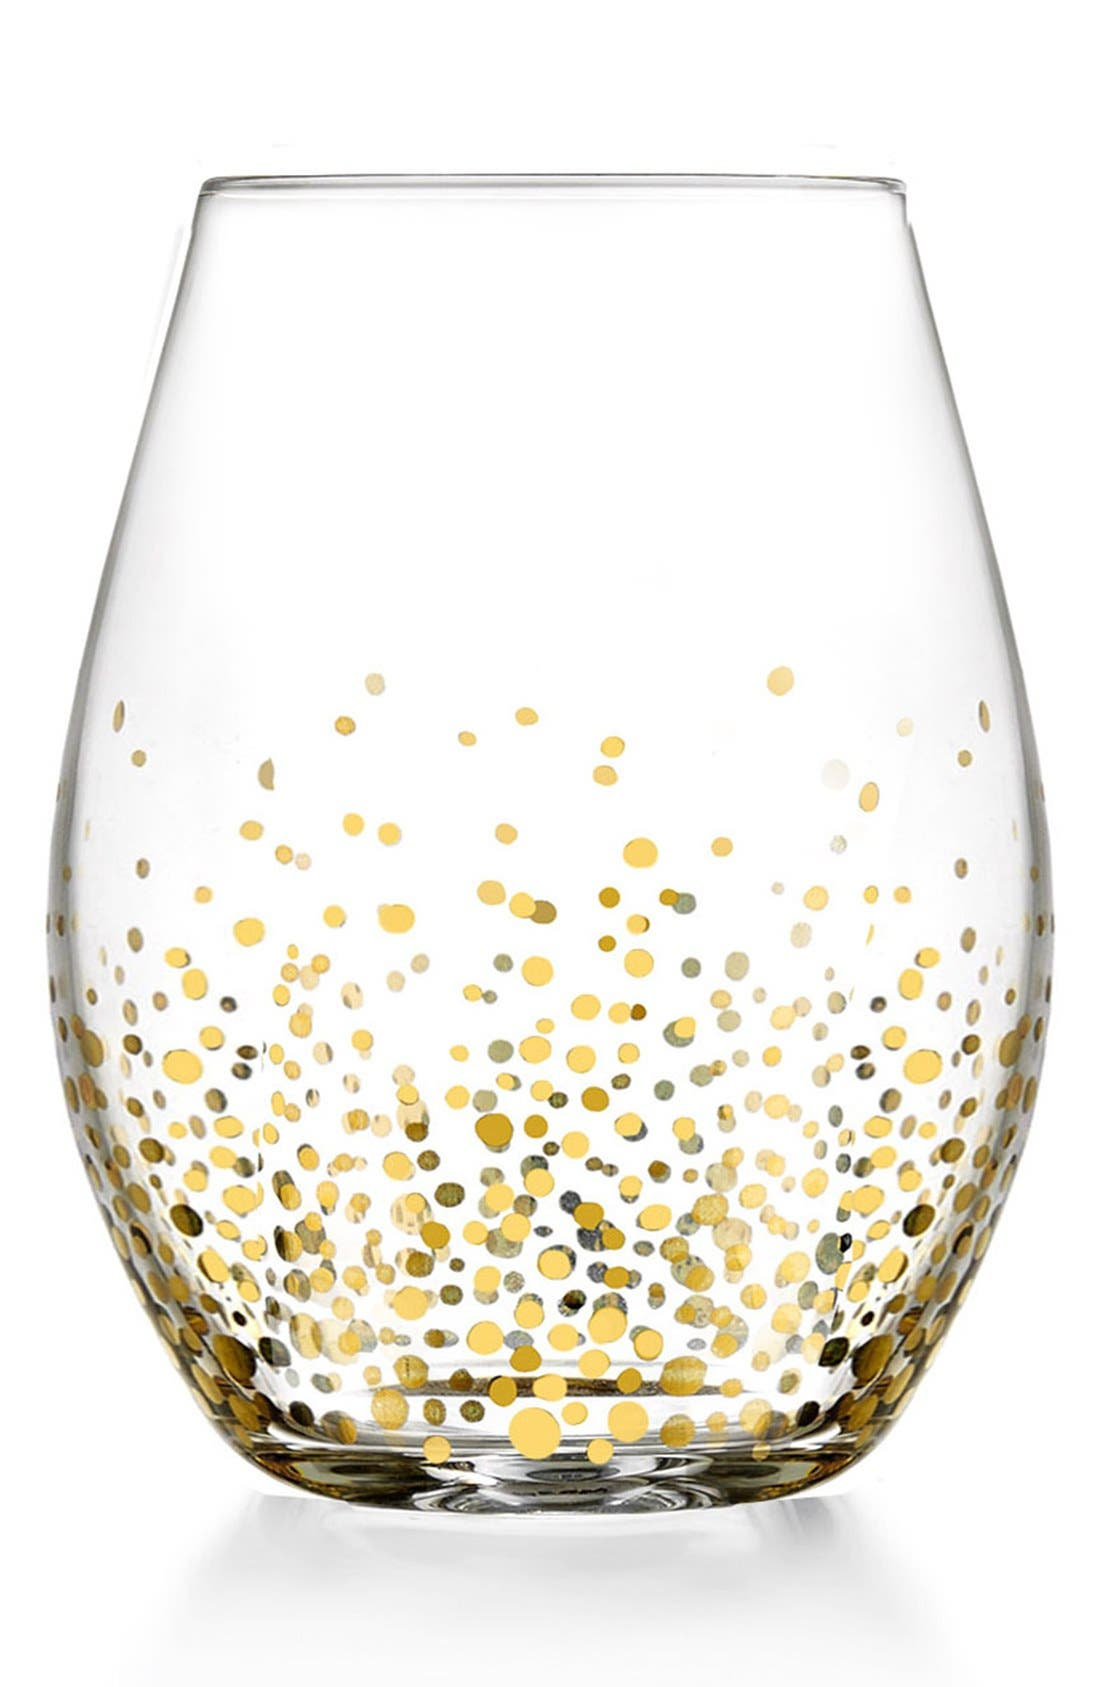 Alternate Image 1 Selected - American Atelier 'Daphne' Stemless Wine Glasses (Set of 4)